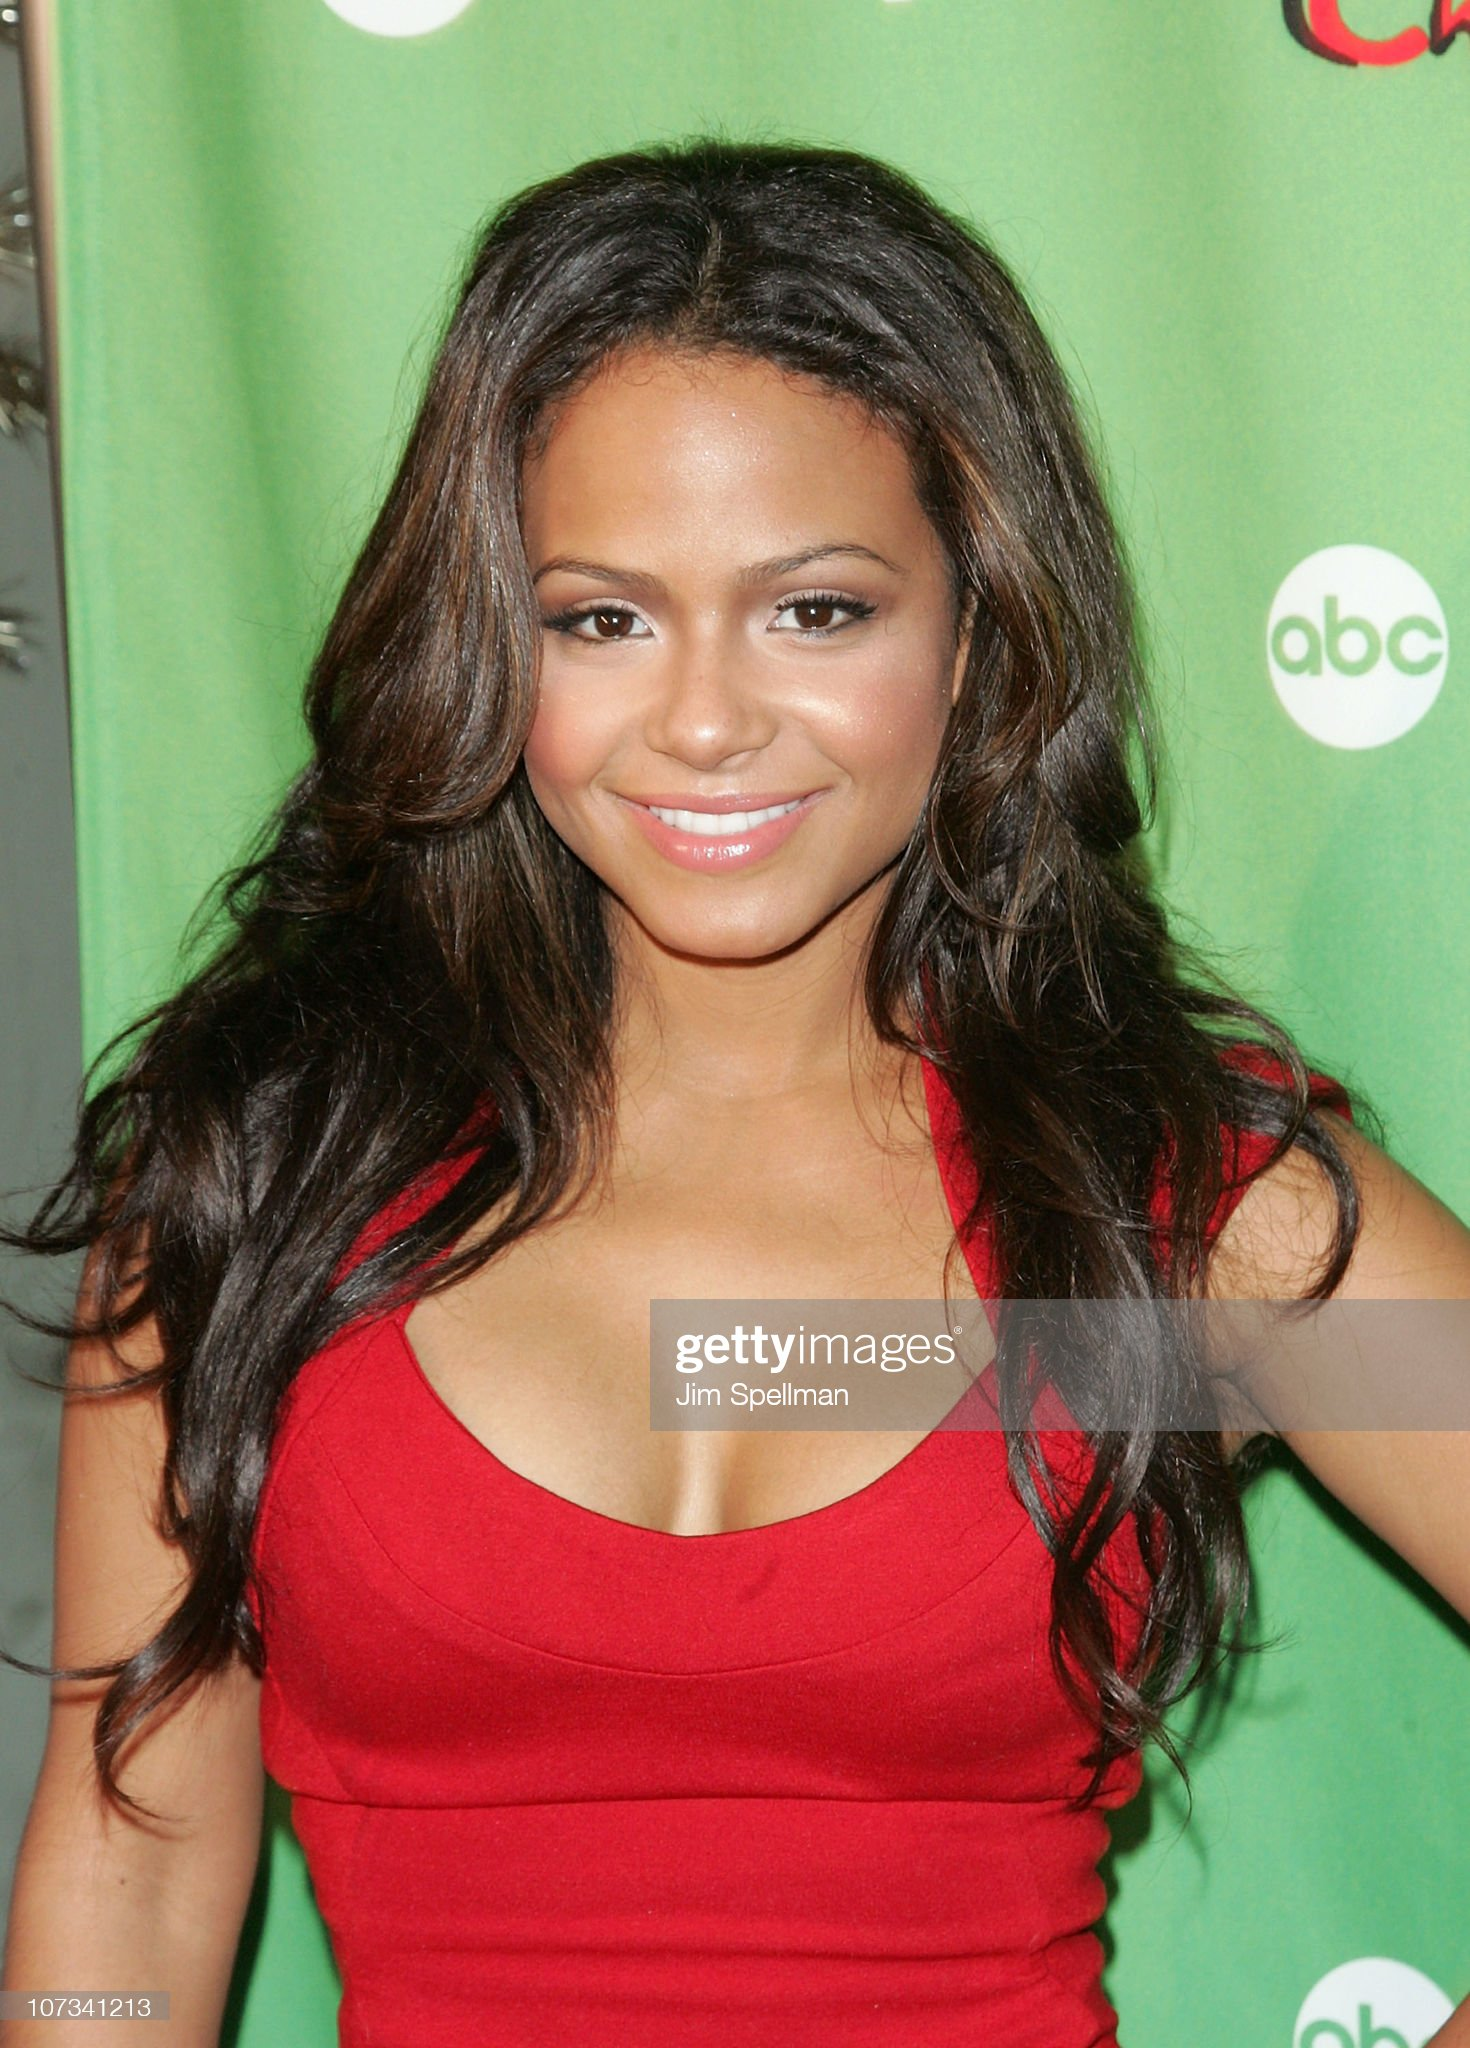 TOP famosas charco - Página 2 Actress-christina-milian-attends-abc-familys-winter-wonderland-at-the-picture-id107341213?s=2048x2048